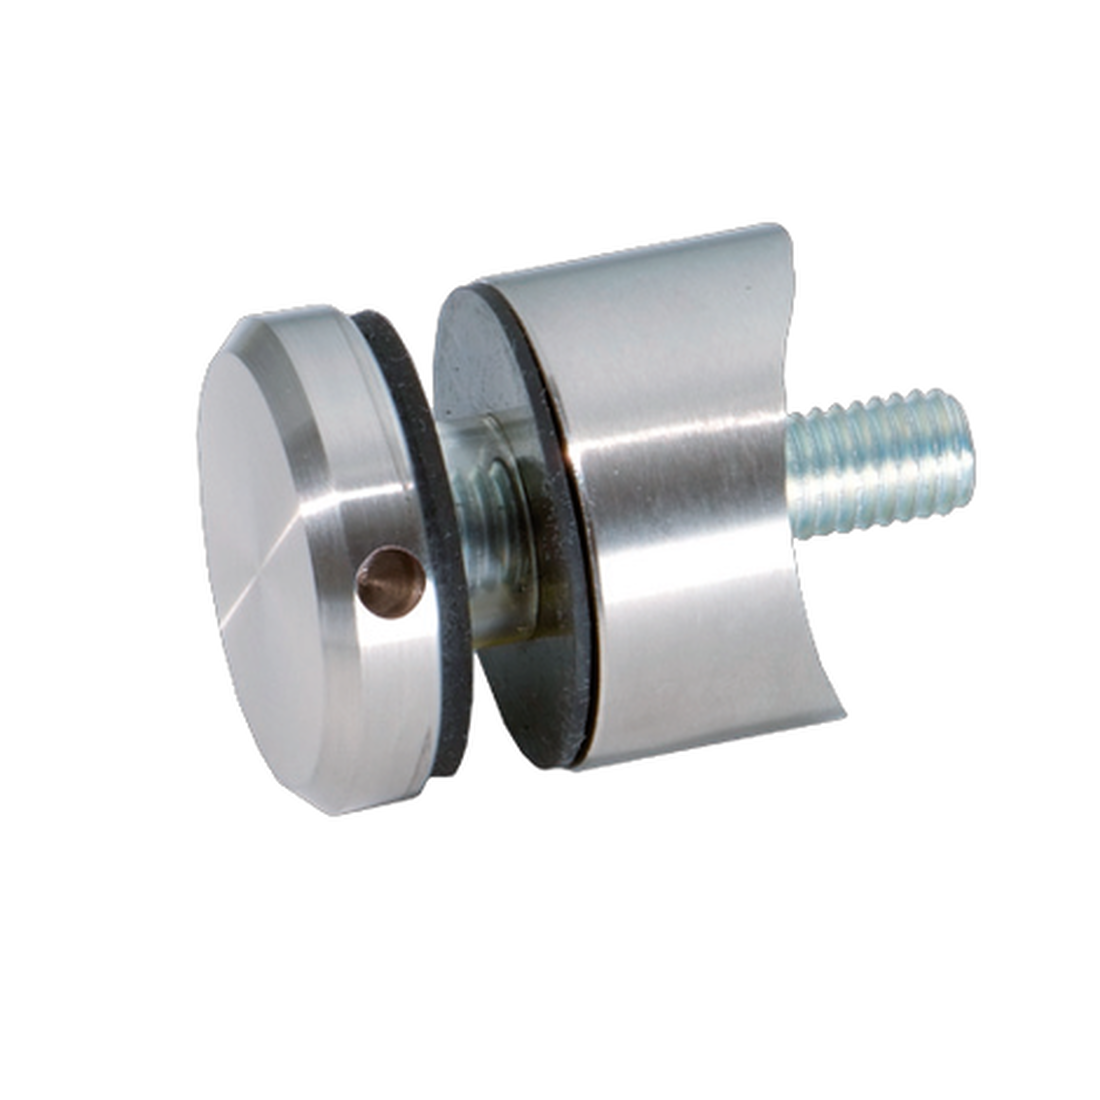 DISTANCE HOLDER WITH TIGHTENING SCREW IN HOLE FOR ROUND TUBE Ø 30-32MM